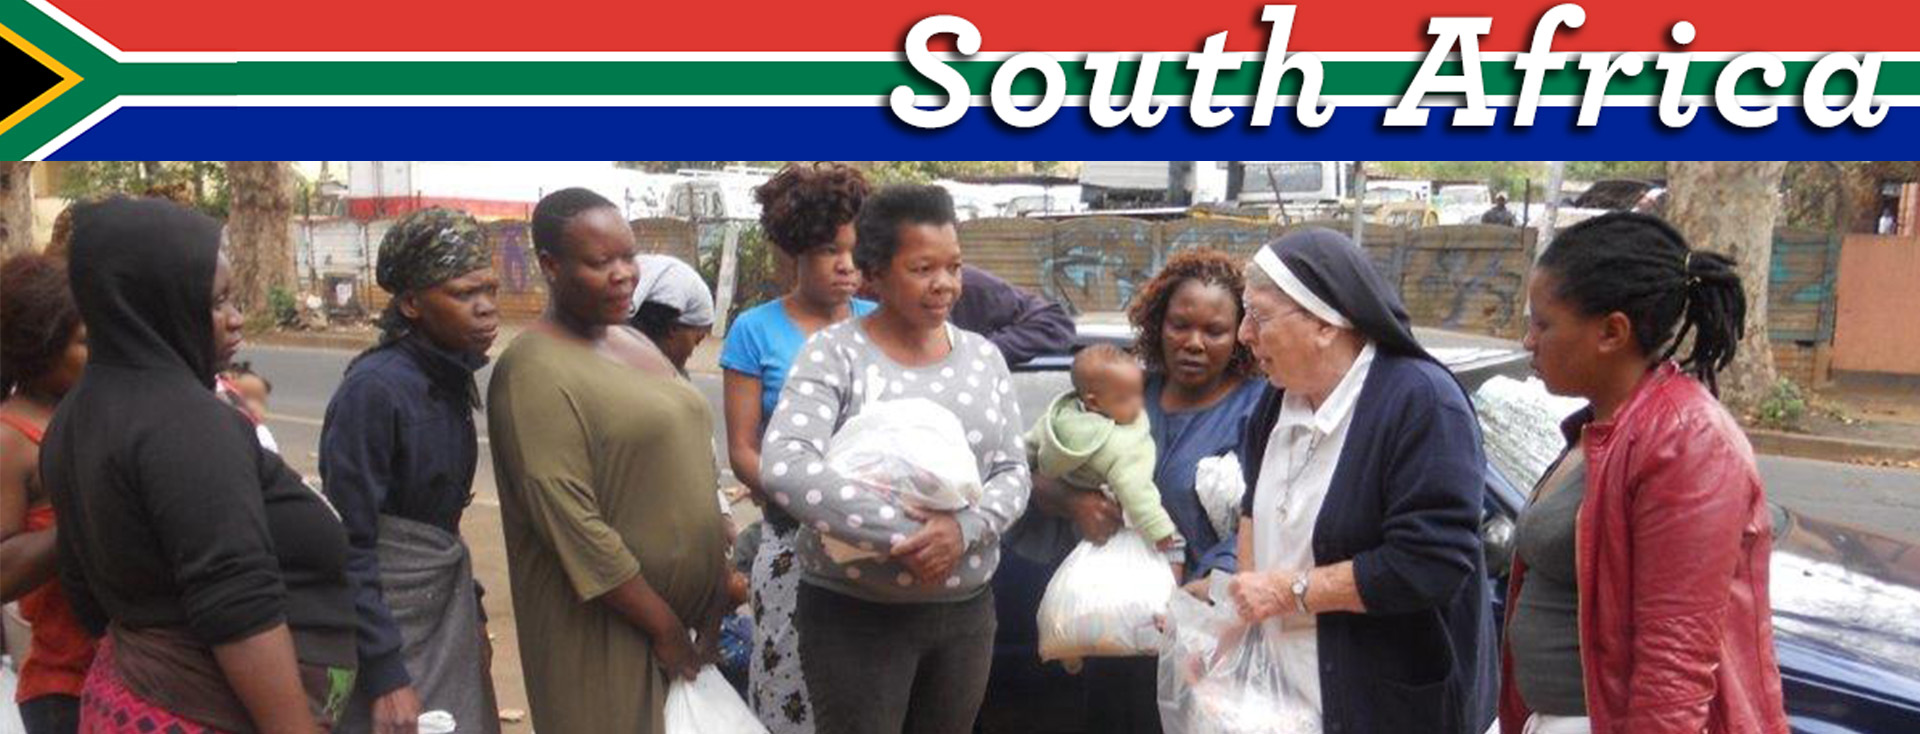 Donate to Catholic charities that serve the poor in South Africa